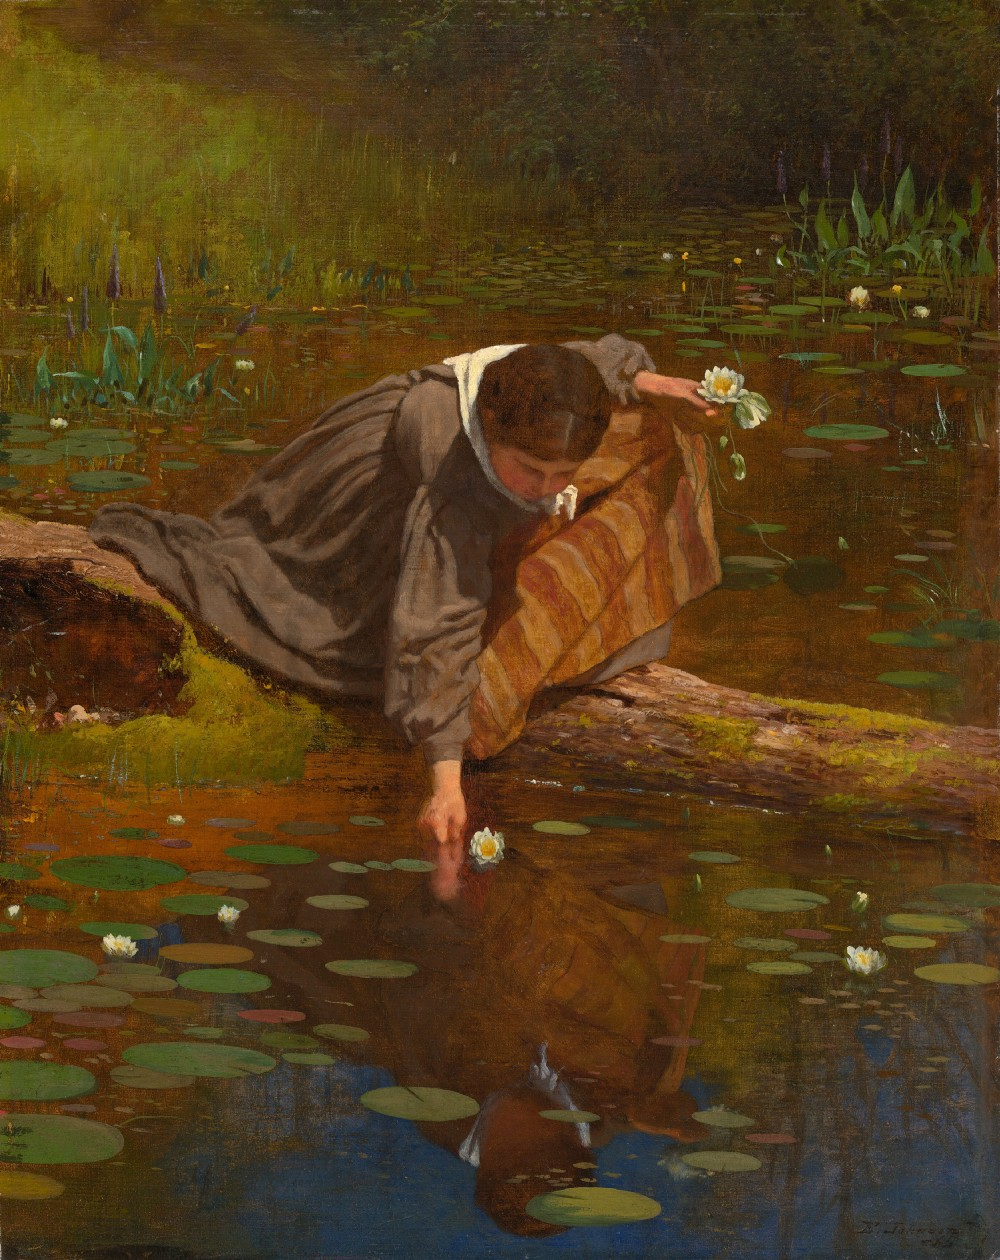 Painting of a girl collecting lilies from a pond by Eastman Johnson. Painted in 1865. Oil on board.